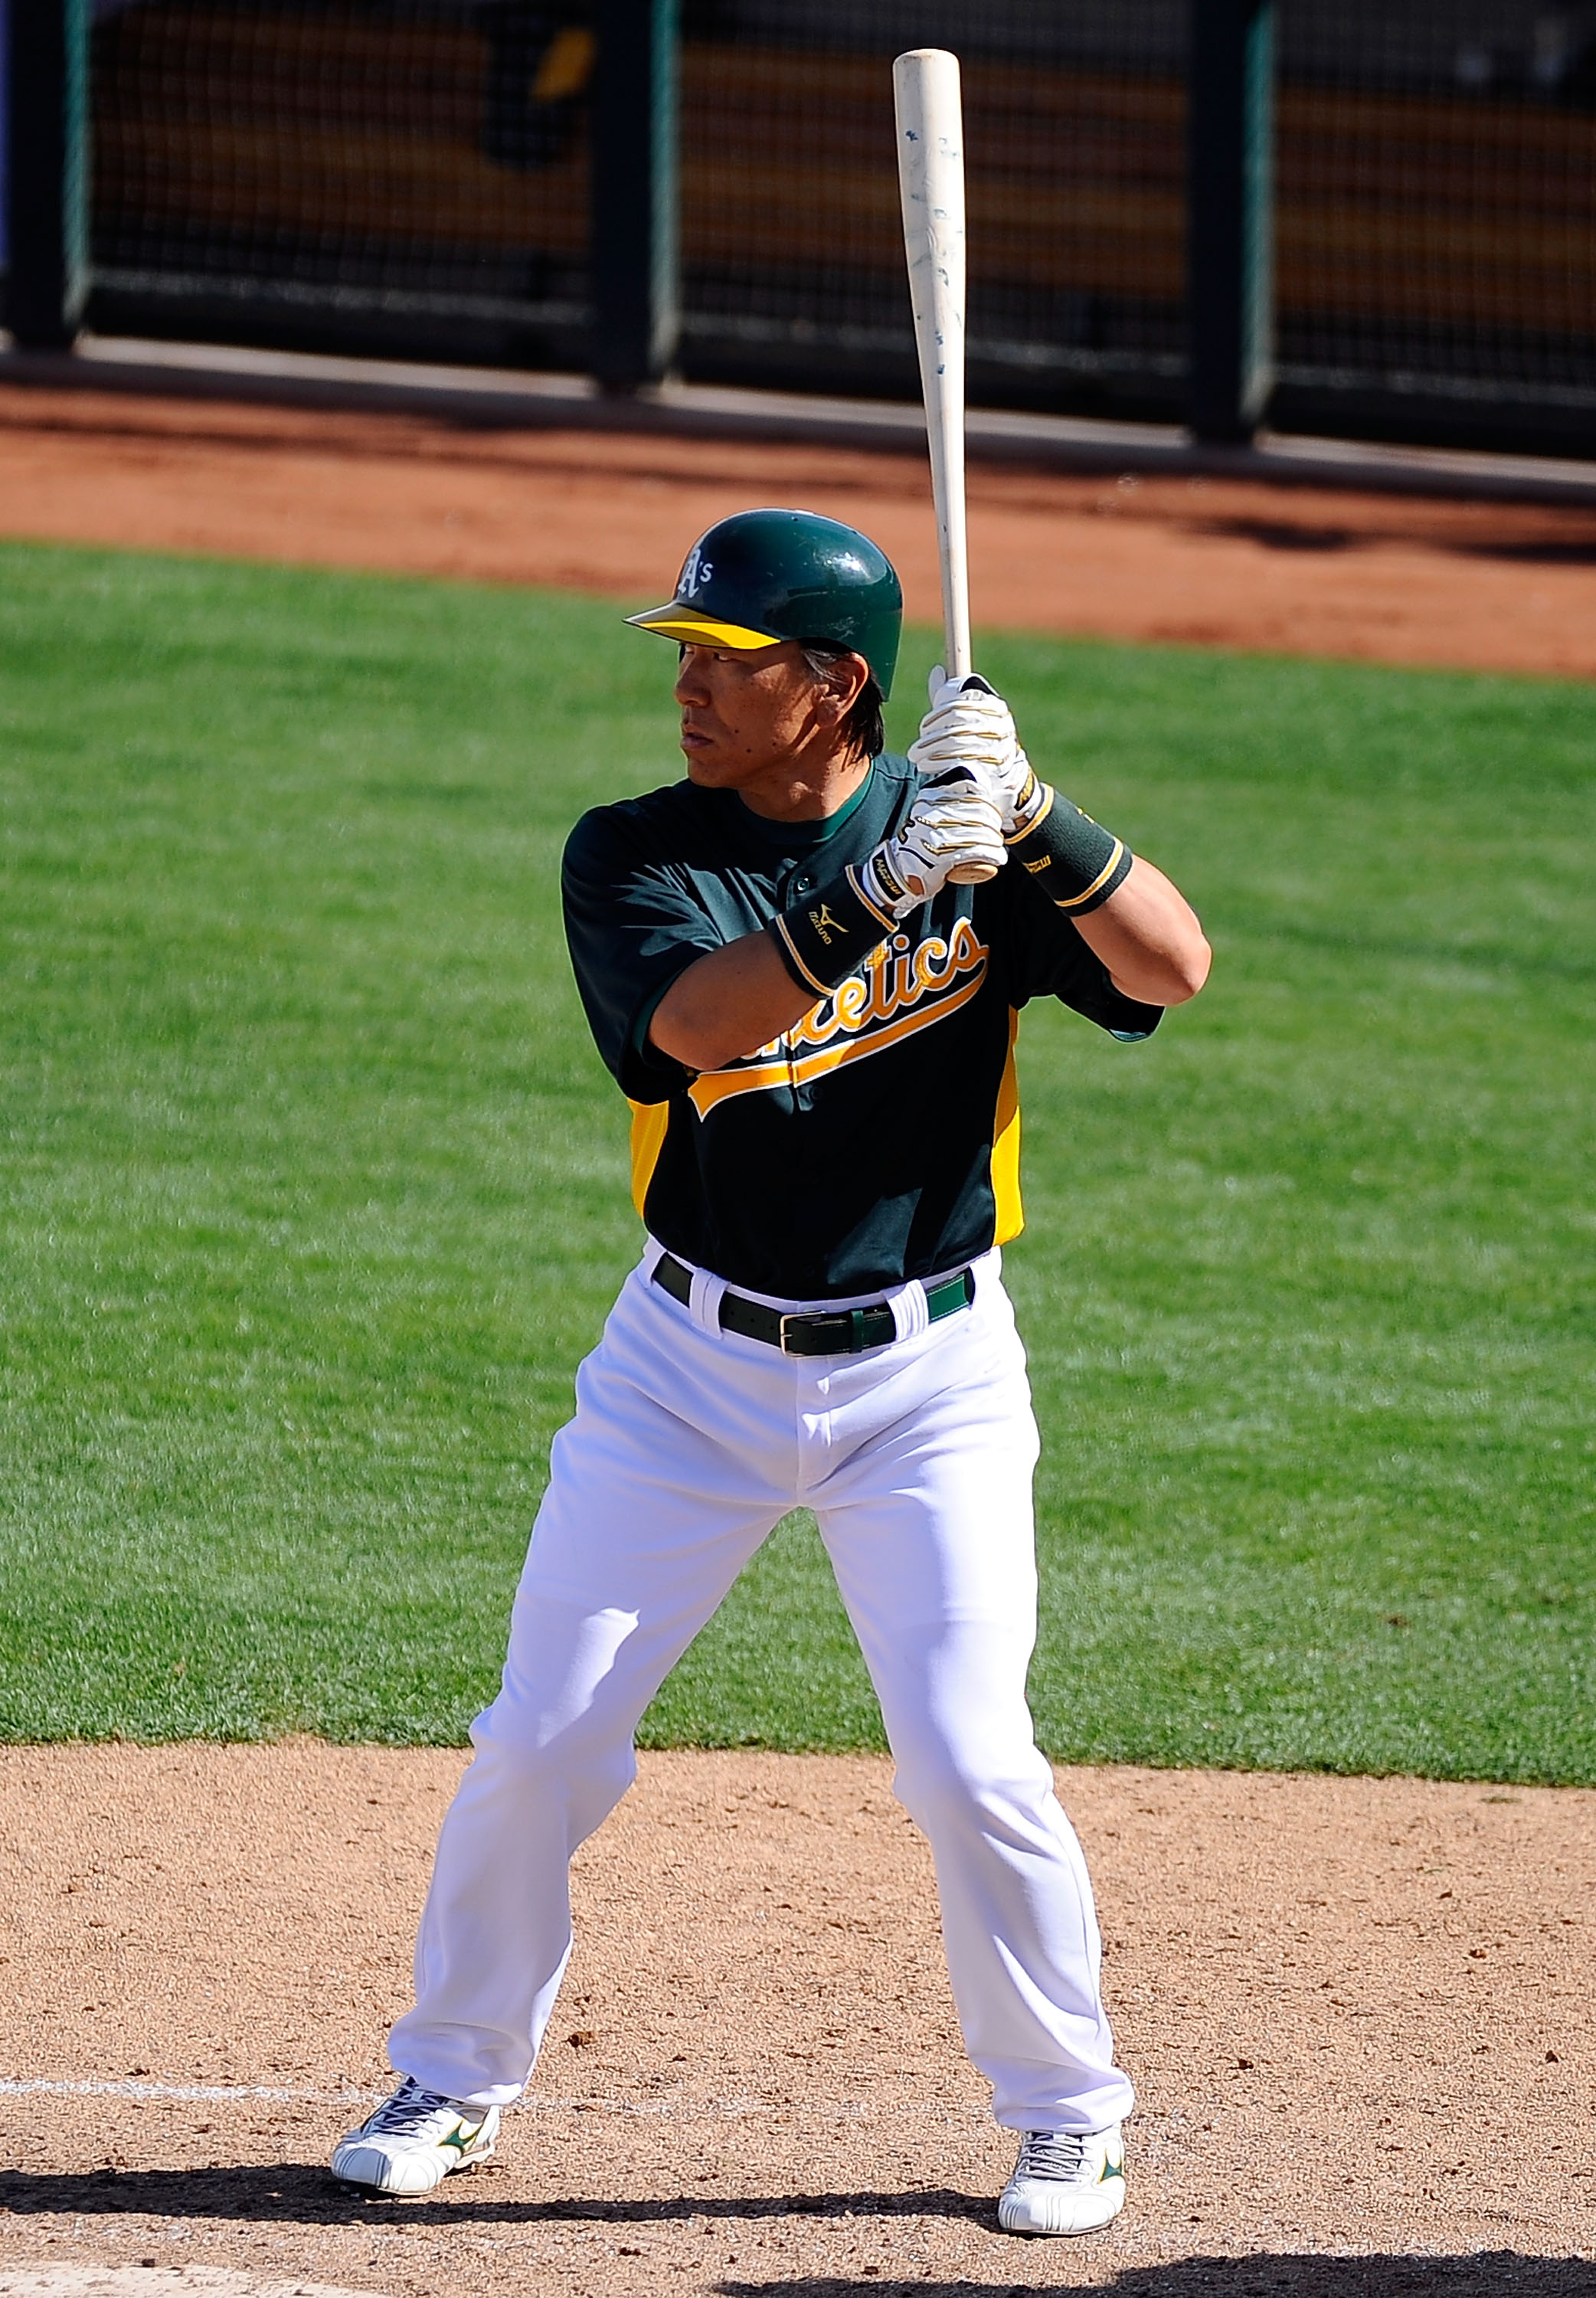 PHOENIX, AZ - MARCH 15:  Hideki Matsui #55 of the Oakland Athletics at bat against the Chicago Cubs during the spring training baseball game at Phoenix Municipal Stadium on March 15, 2011 in Phoenix, Arizona.  (Photo by Kevork Djansezian/Getty Images)